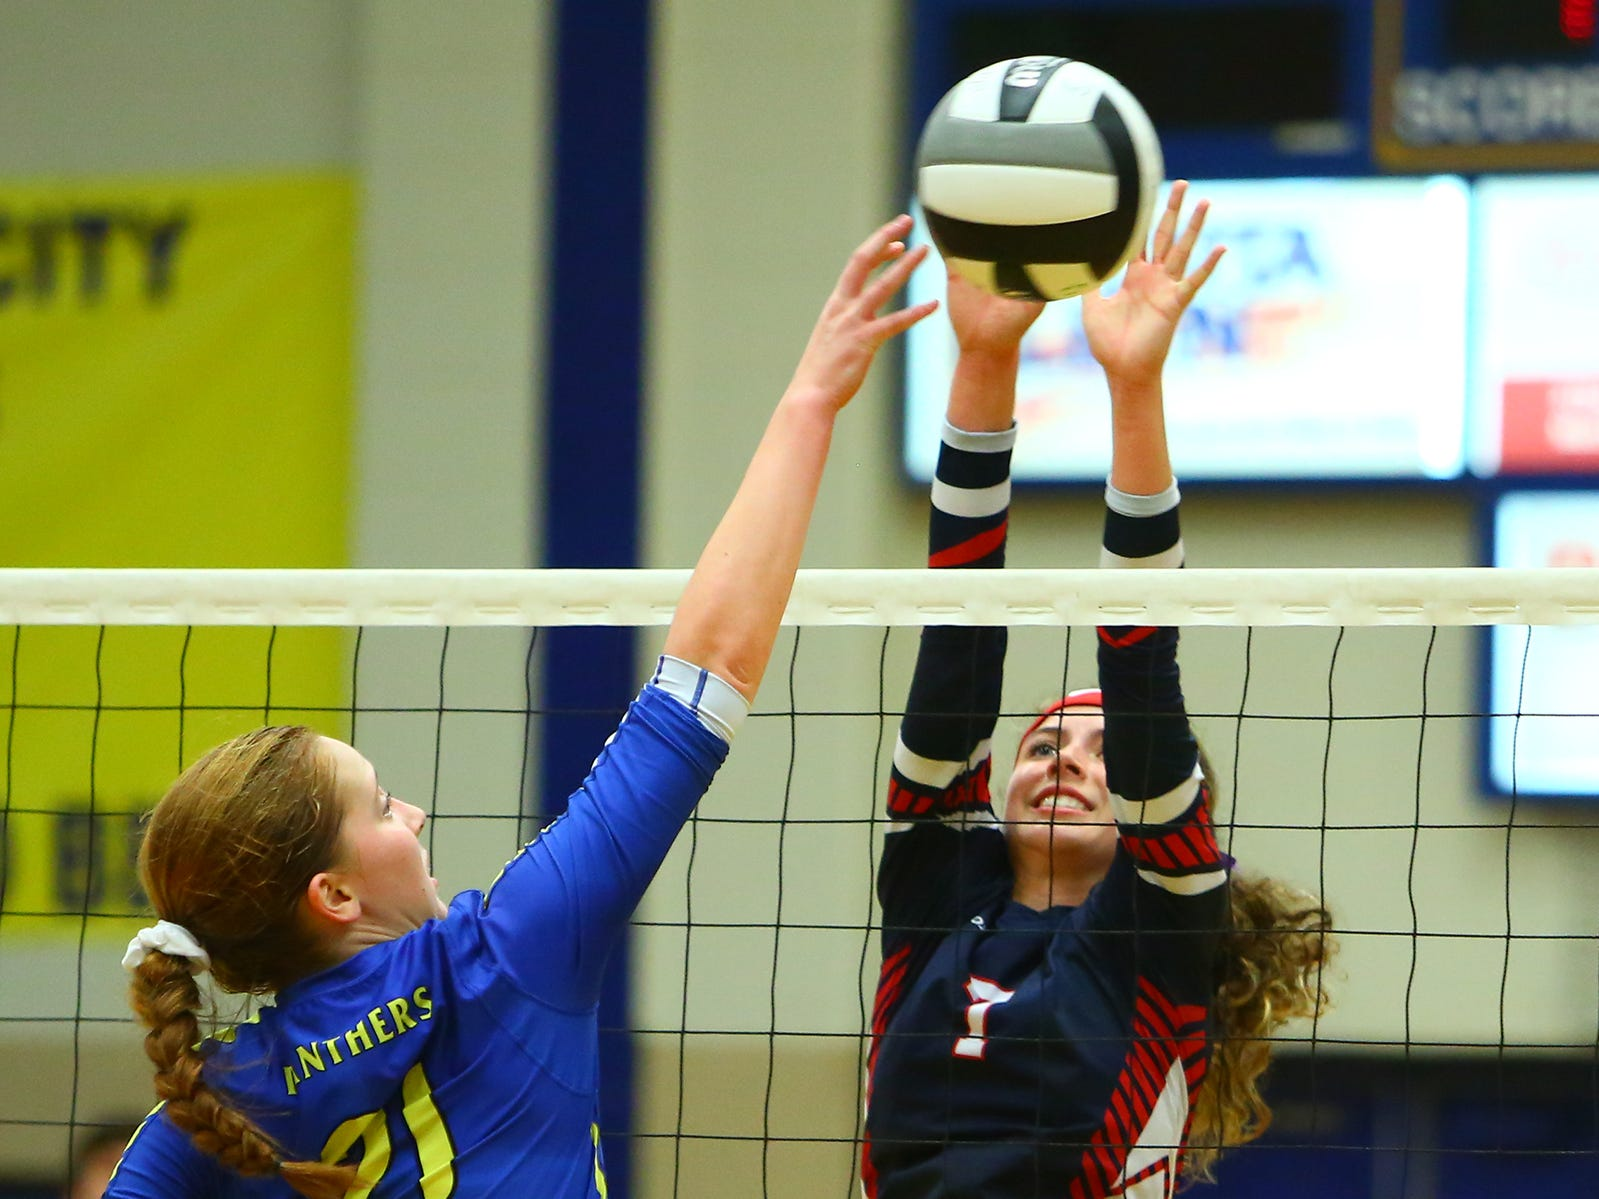 Fairfield Christian lost to Portsmouth Clay Wednesday night, Oct. 31, 2018, at Lancaster High School in a regional semifinal game in Lancaster.